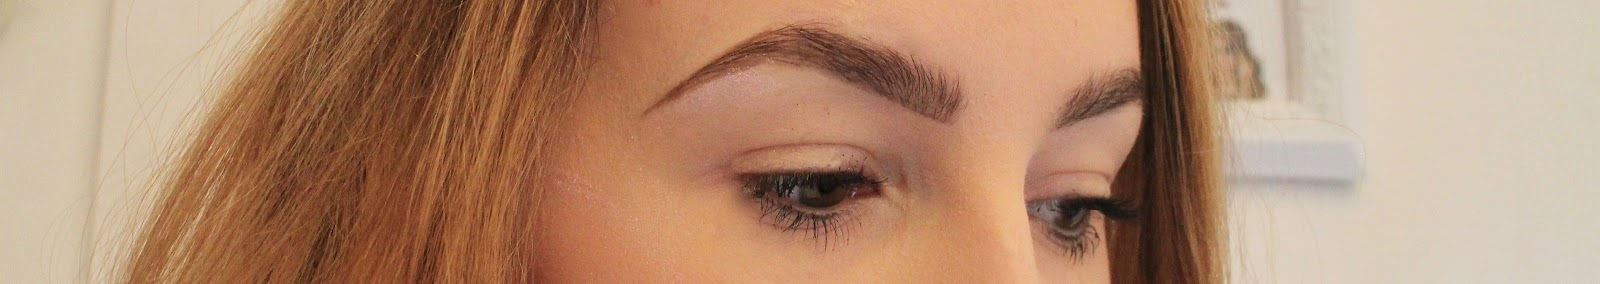 anastasia beverly hills dipbrow gel blog post